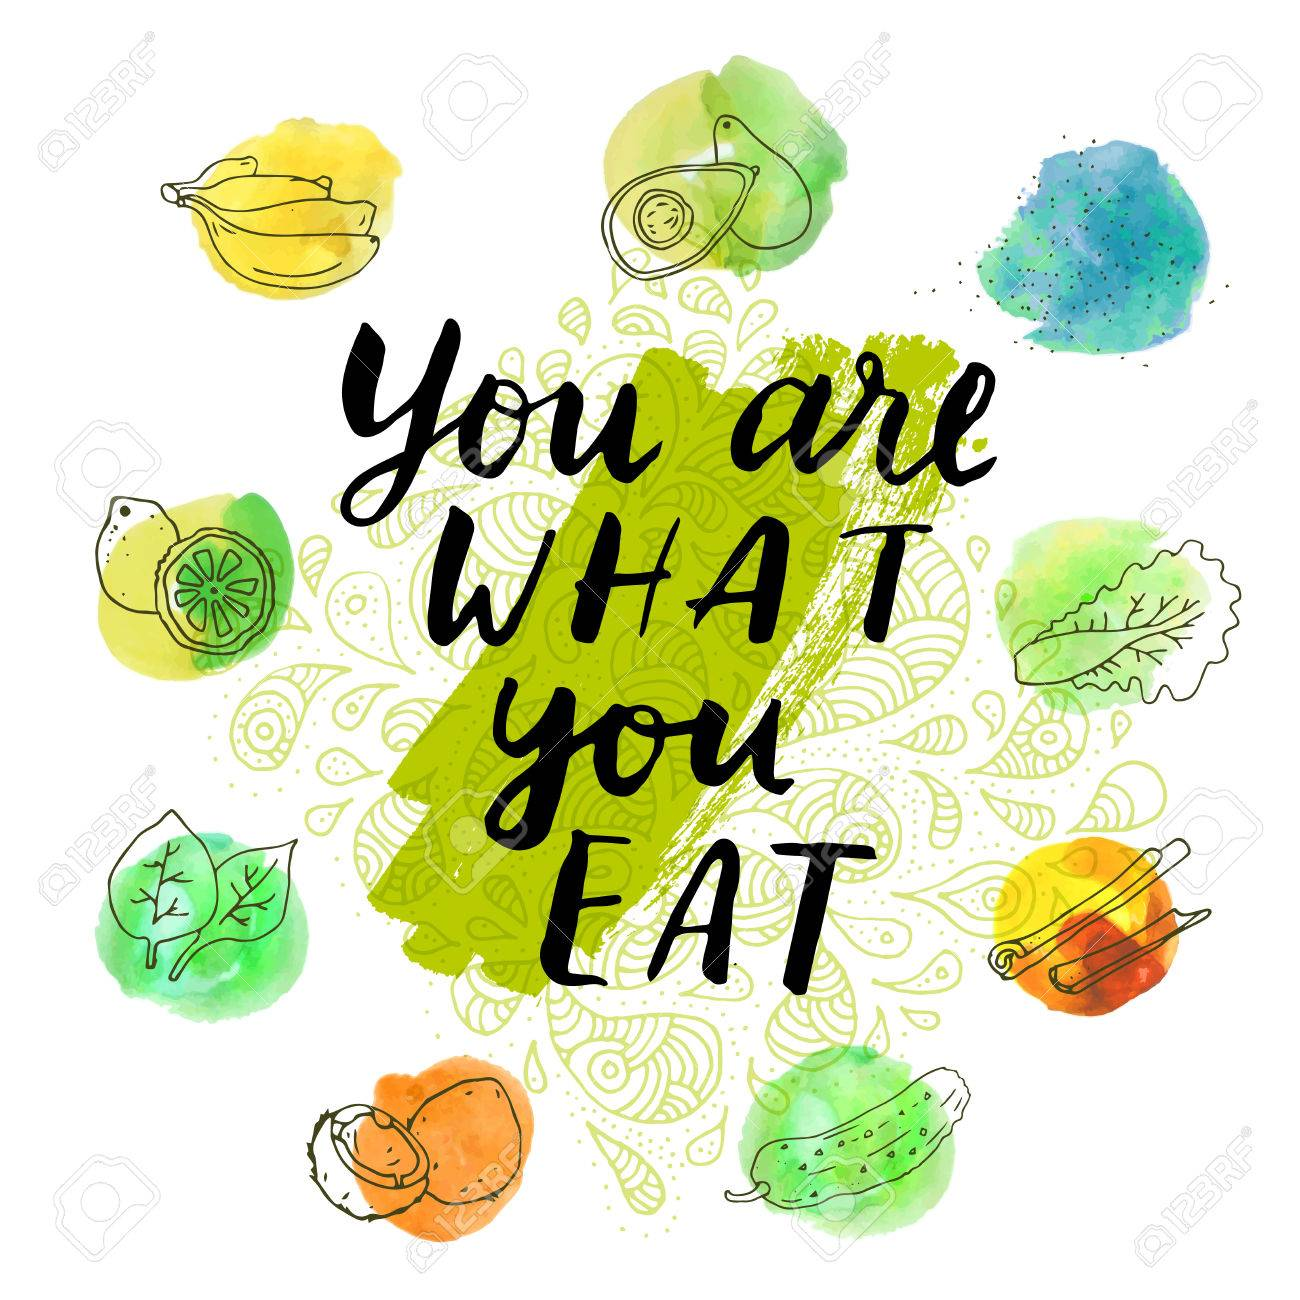 You Are What You Eat Inspirational Motivational Quote For Healthy